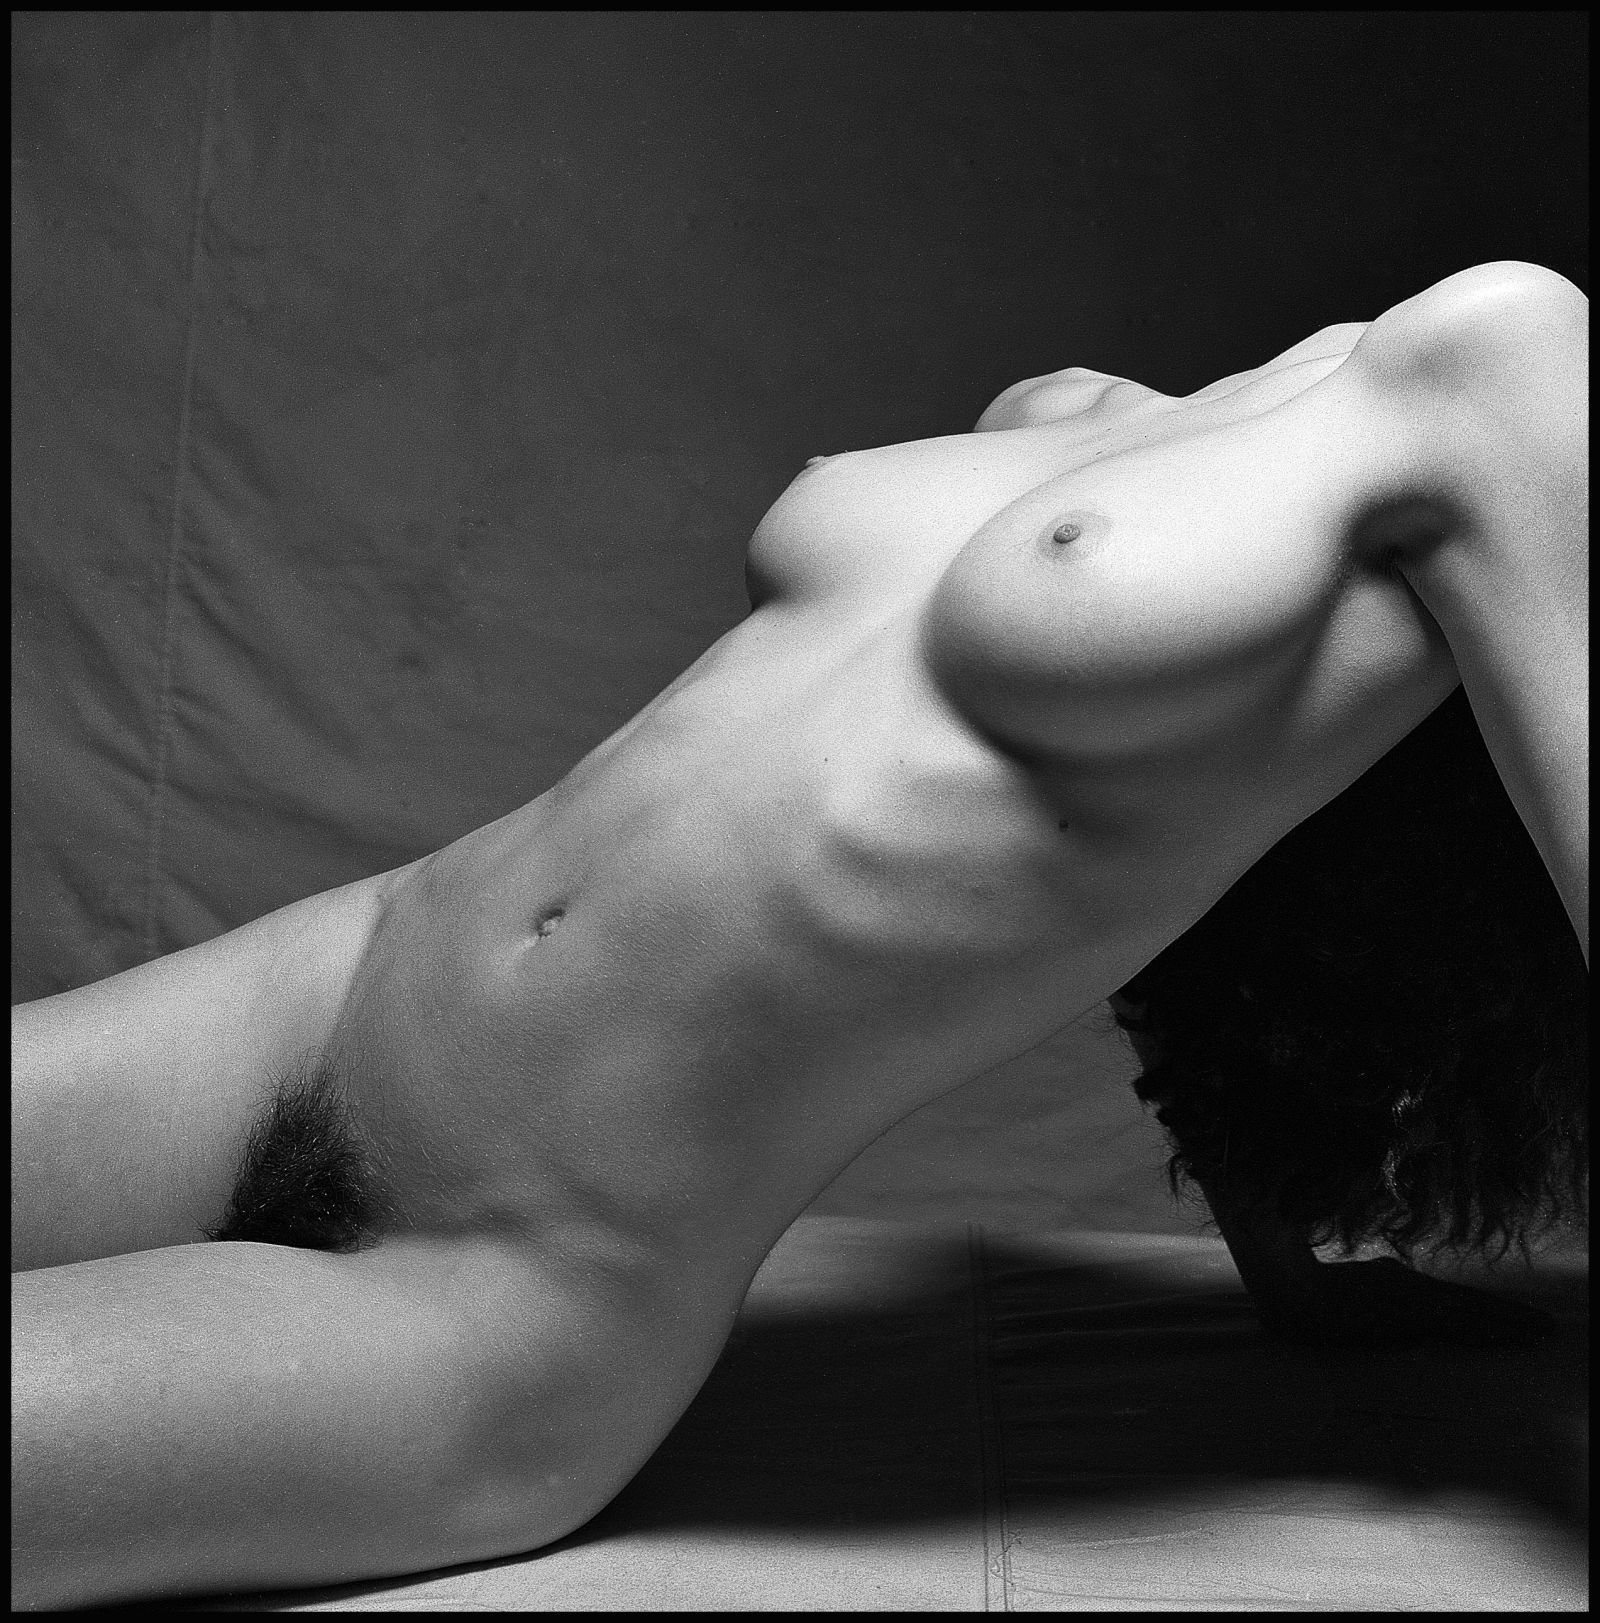 Madonna Nudes Are Right Here - We Got Them All!